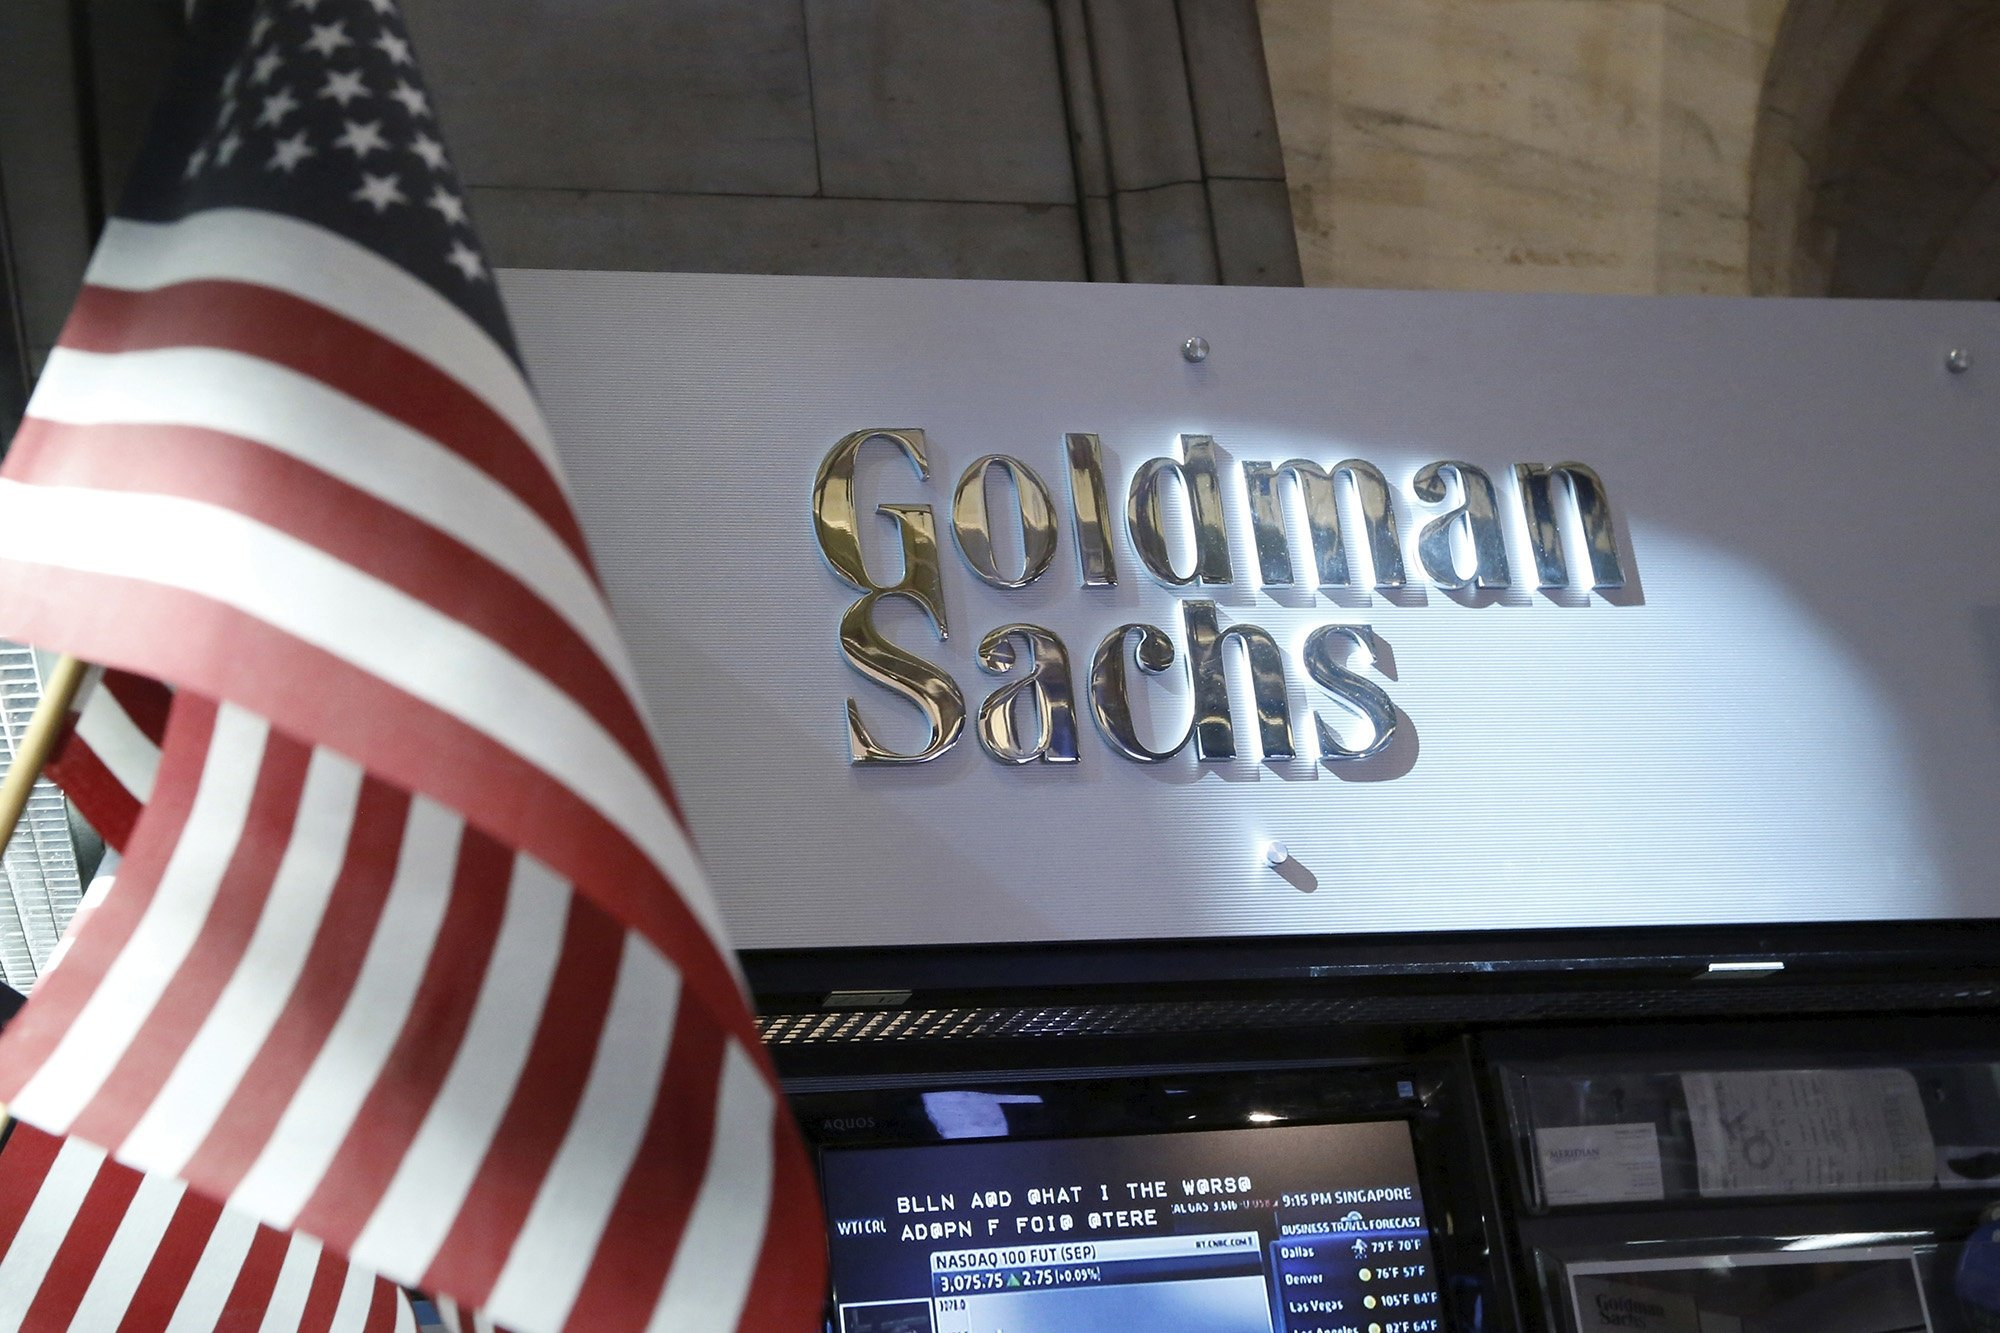 Goldman Sachs to shift assets from London to Frankfurt in post-Brexit move, report says thumbnail